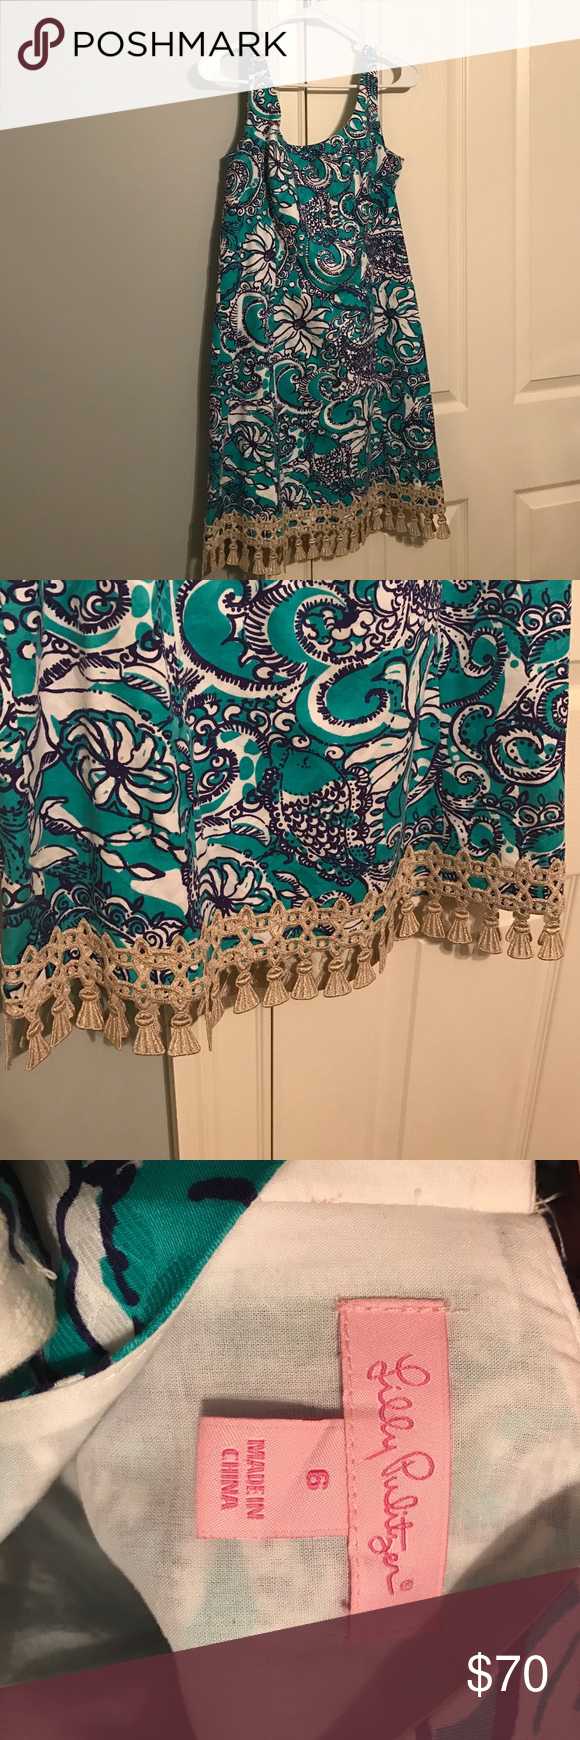 Lilly Pulitzer Eaton Dress Size 6 LP dress. Worn once. Excellent condition. Lilly Pulitzer Dresses Mini